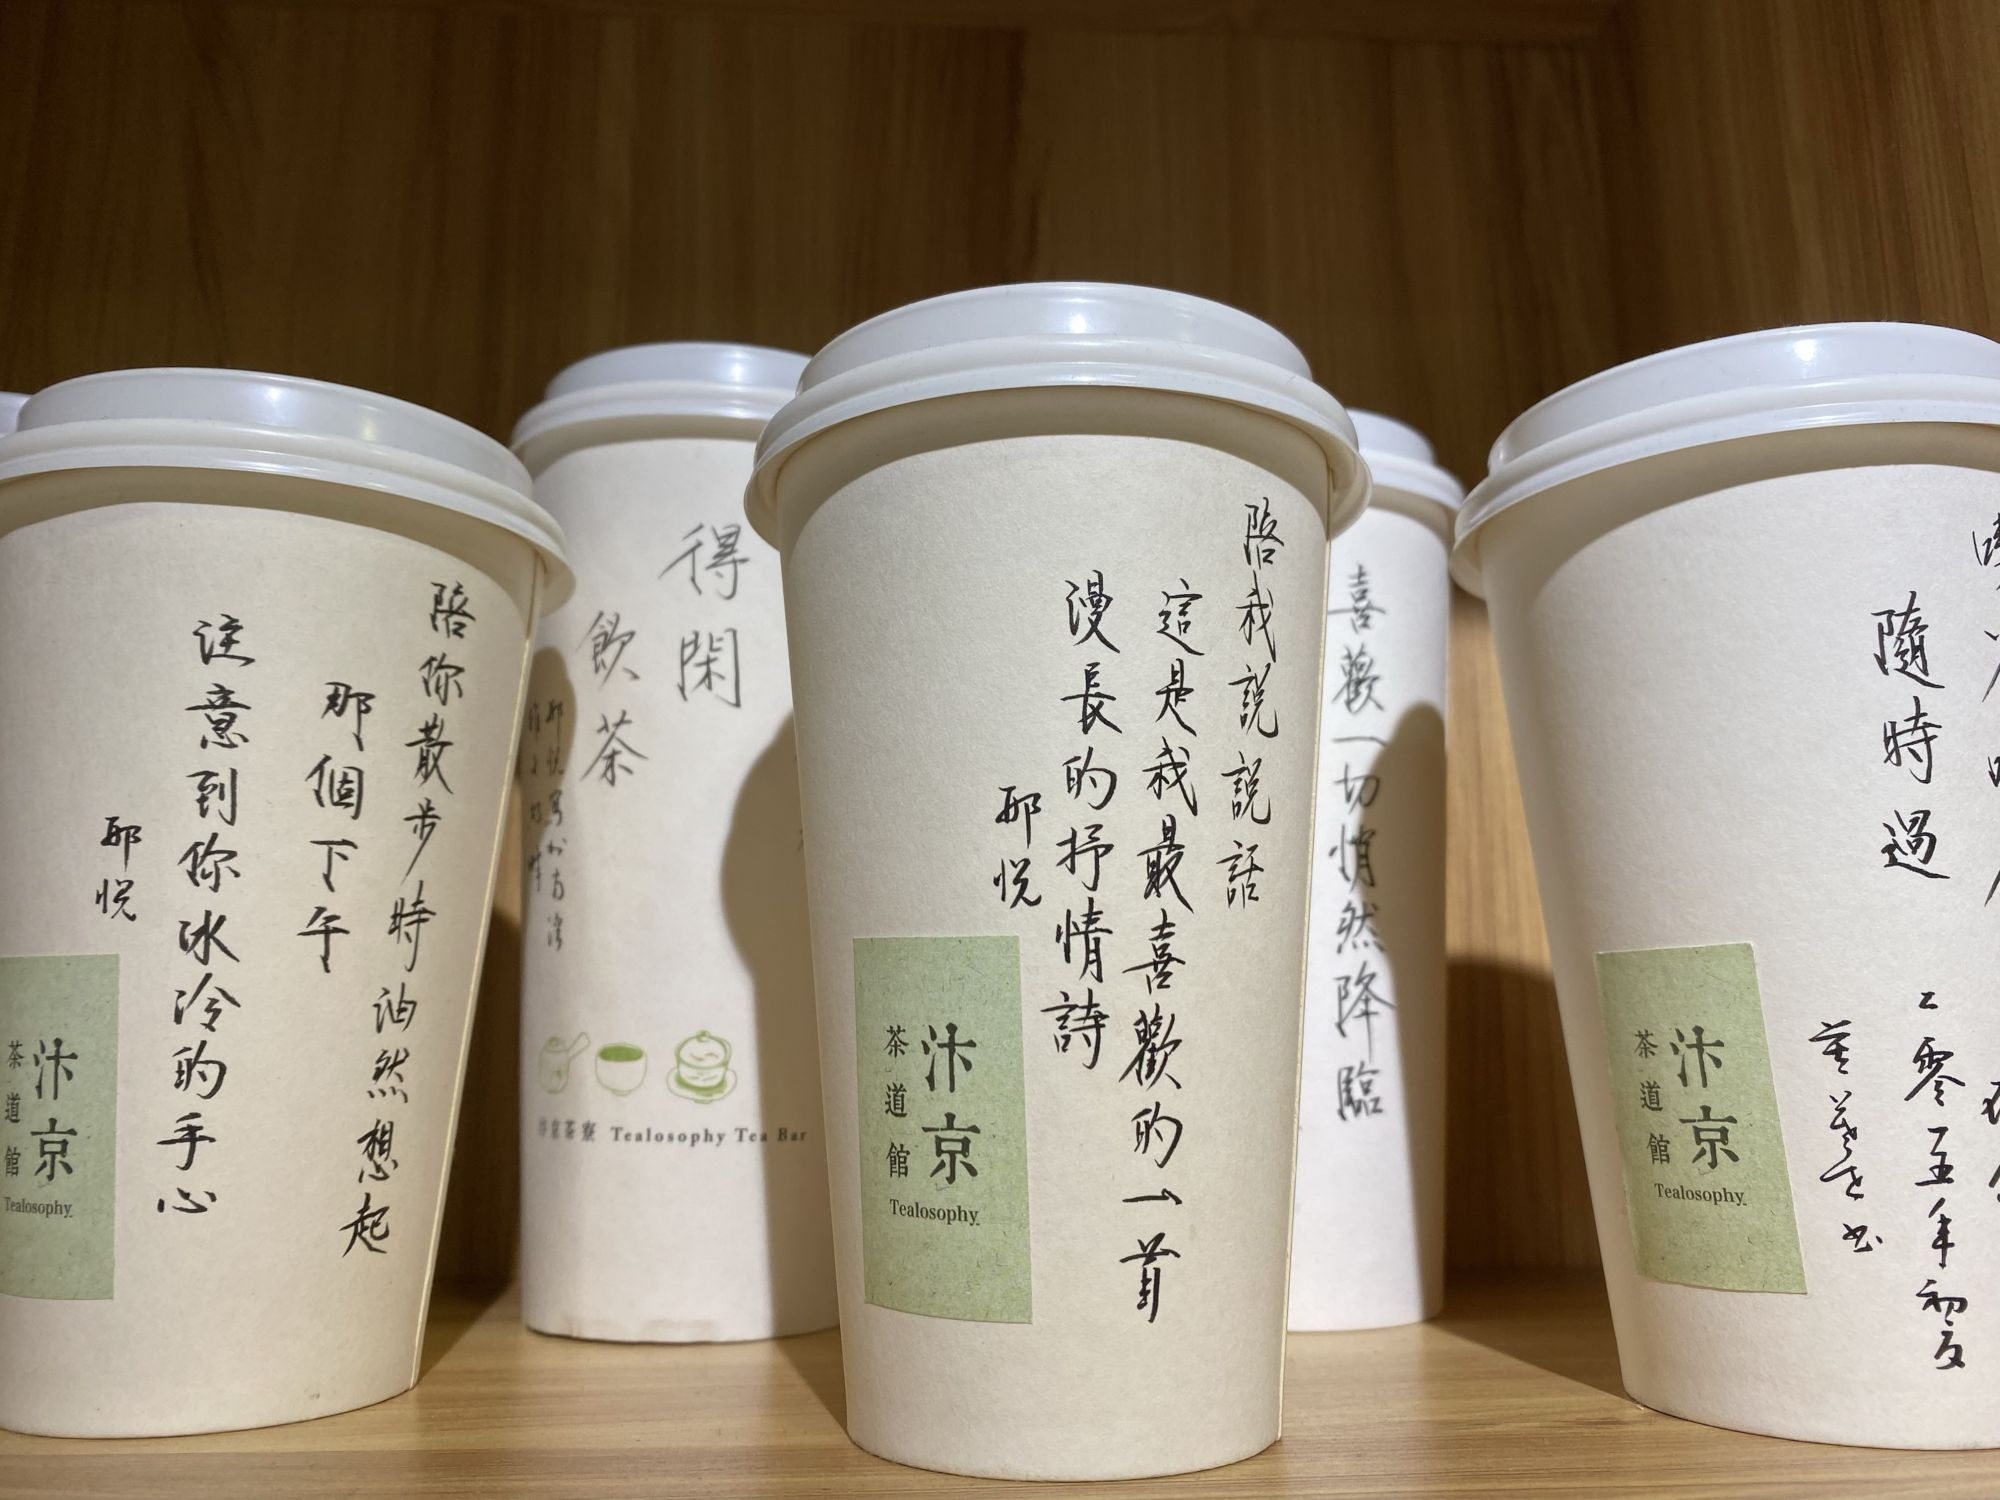 tealosophy tea bar Best Places to Get Your Matcha Fix in Macau